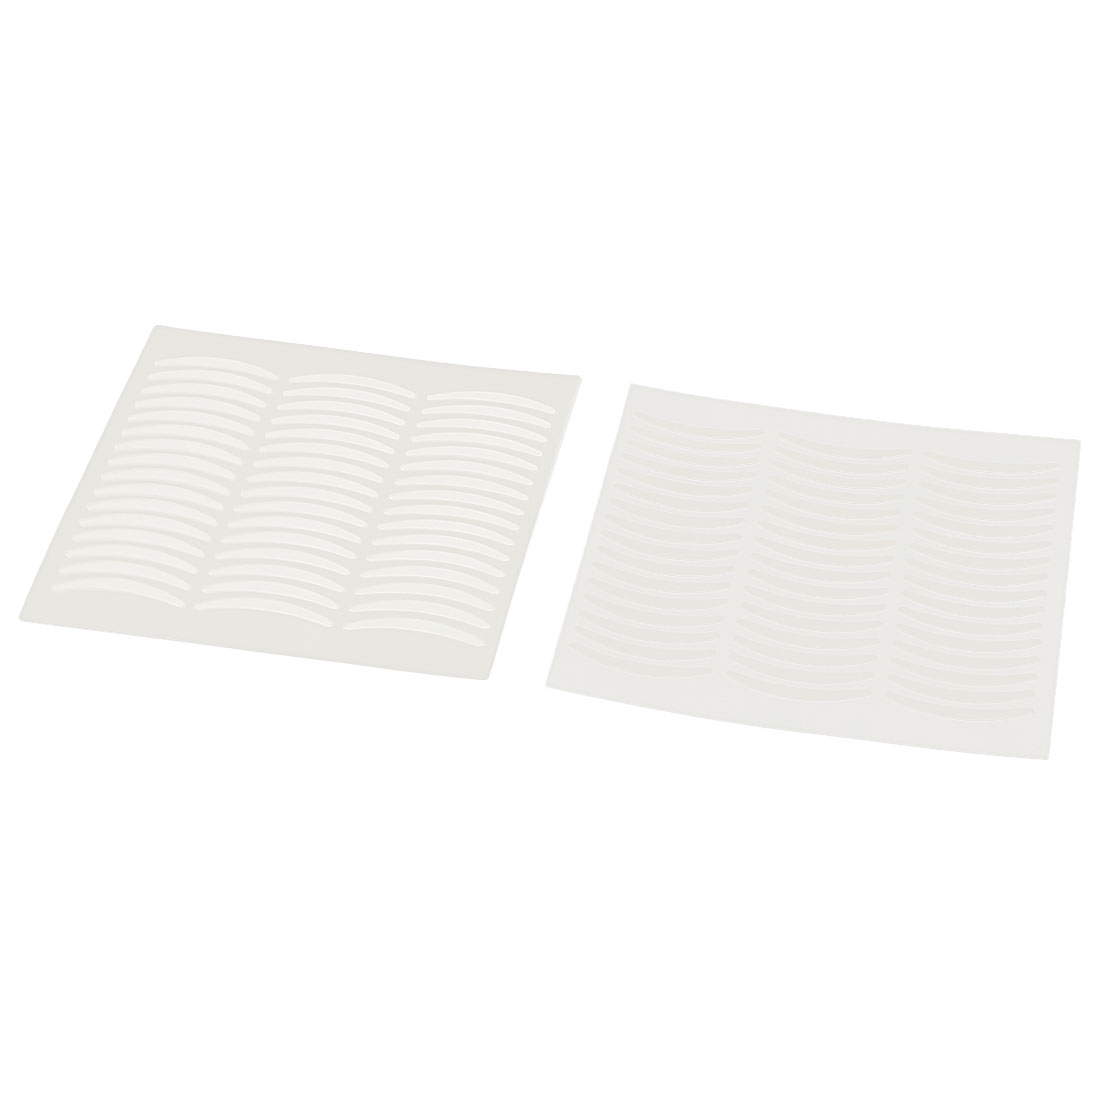 120 Pairs Narrow Double Eyelid Sticker Tape Makeup Tool Clear White